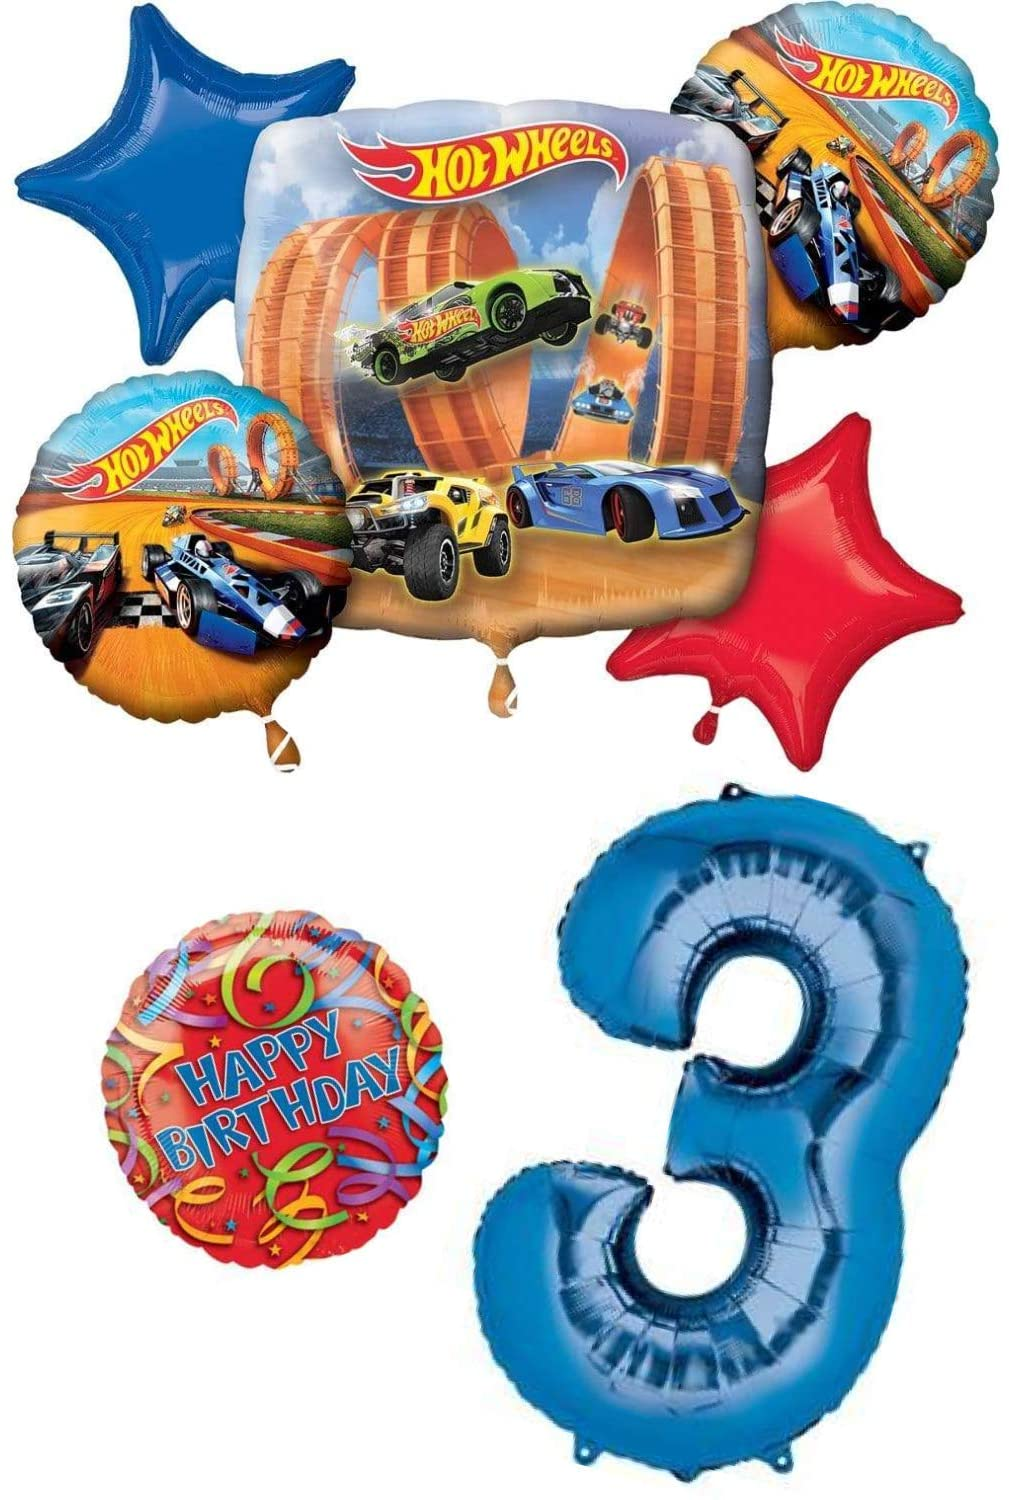 This Sweet Earth Hot Wheels Race Cars Happy Birthday 3 Year Old 3rd Birthday Balloon Party Decoration Bundle